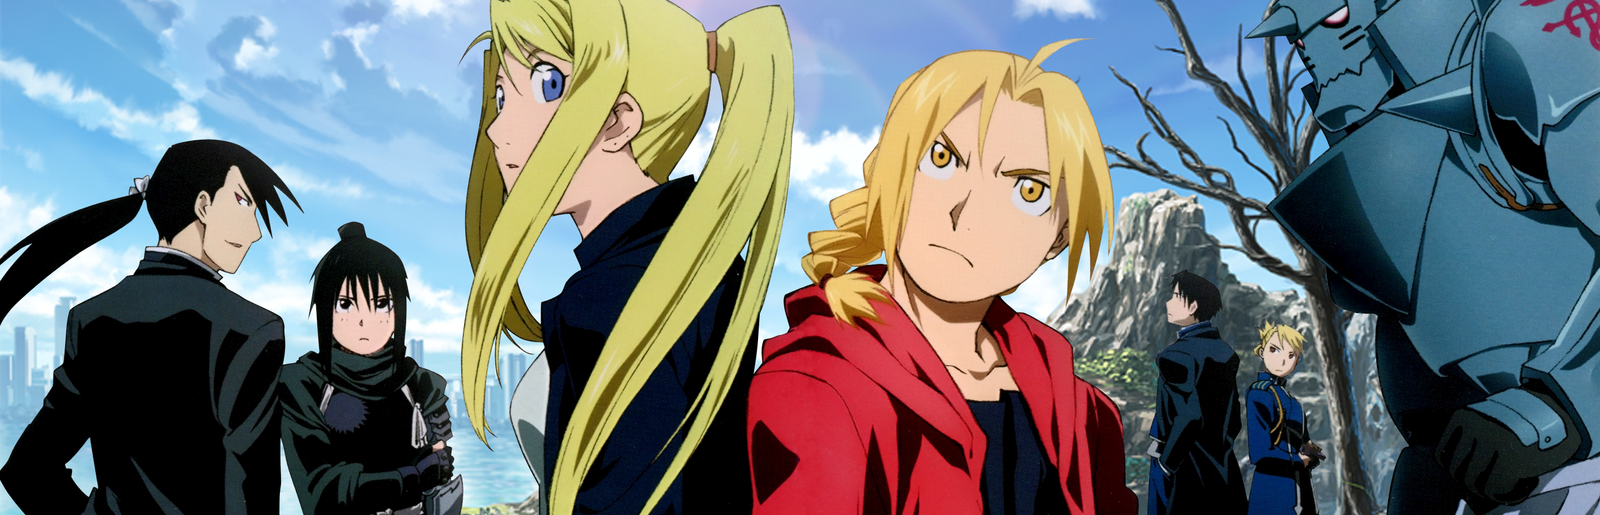 Fullmetal Alchemist: Brotherhood – Rewatch #11